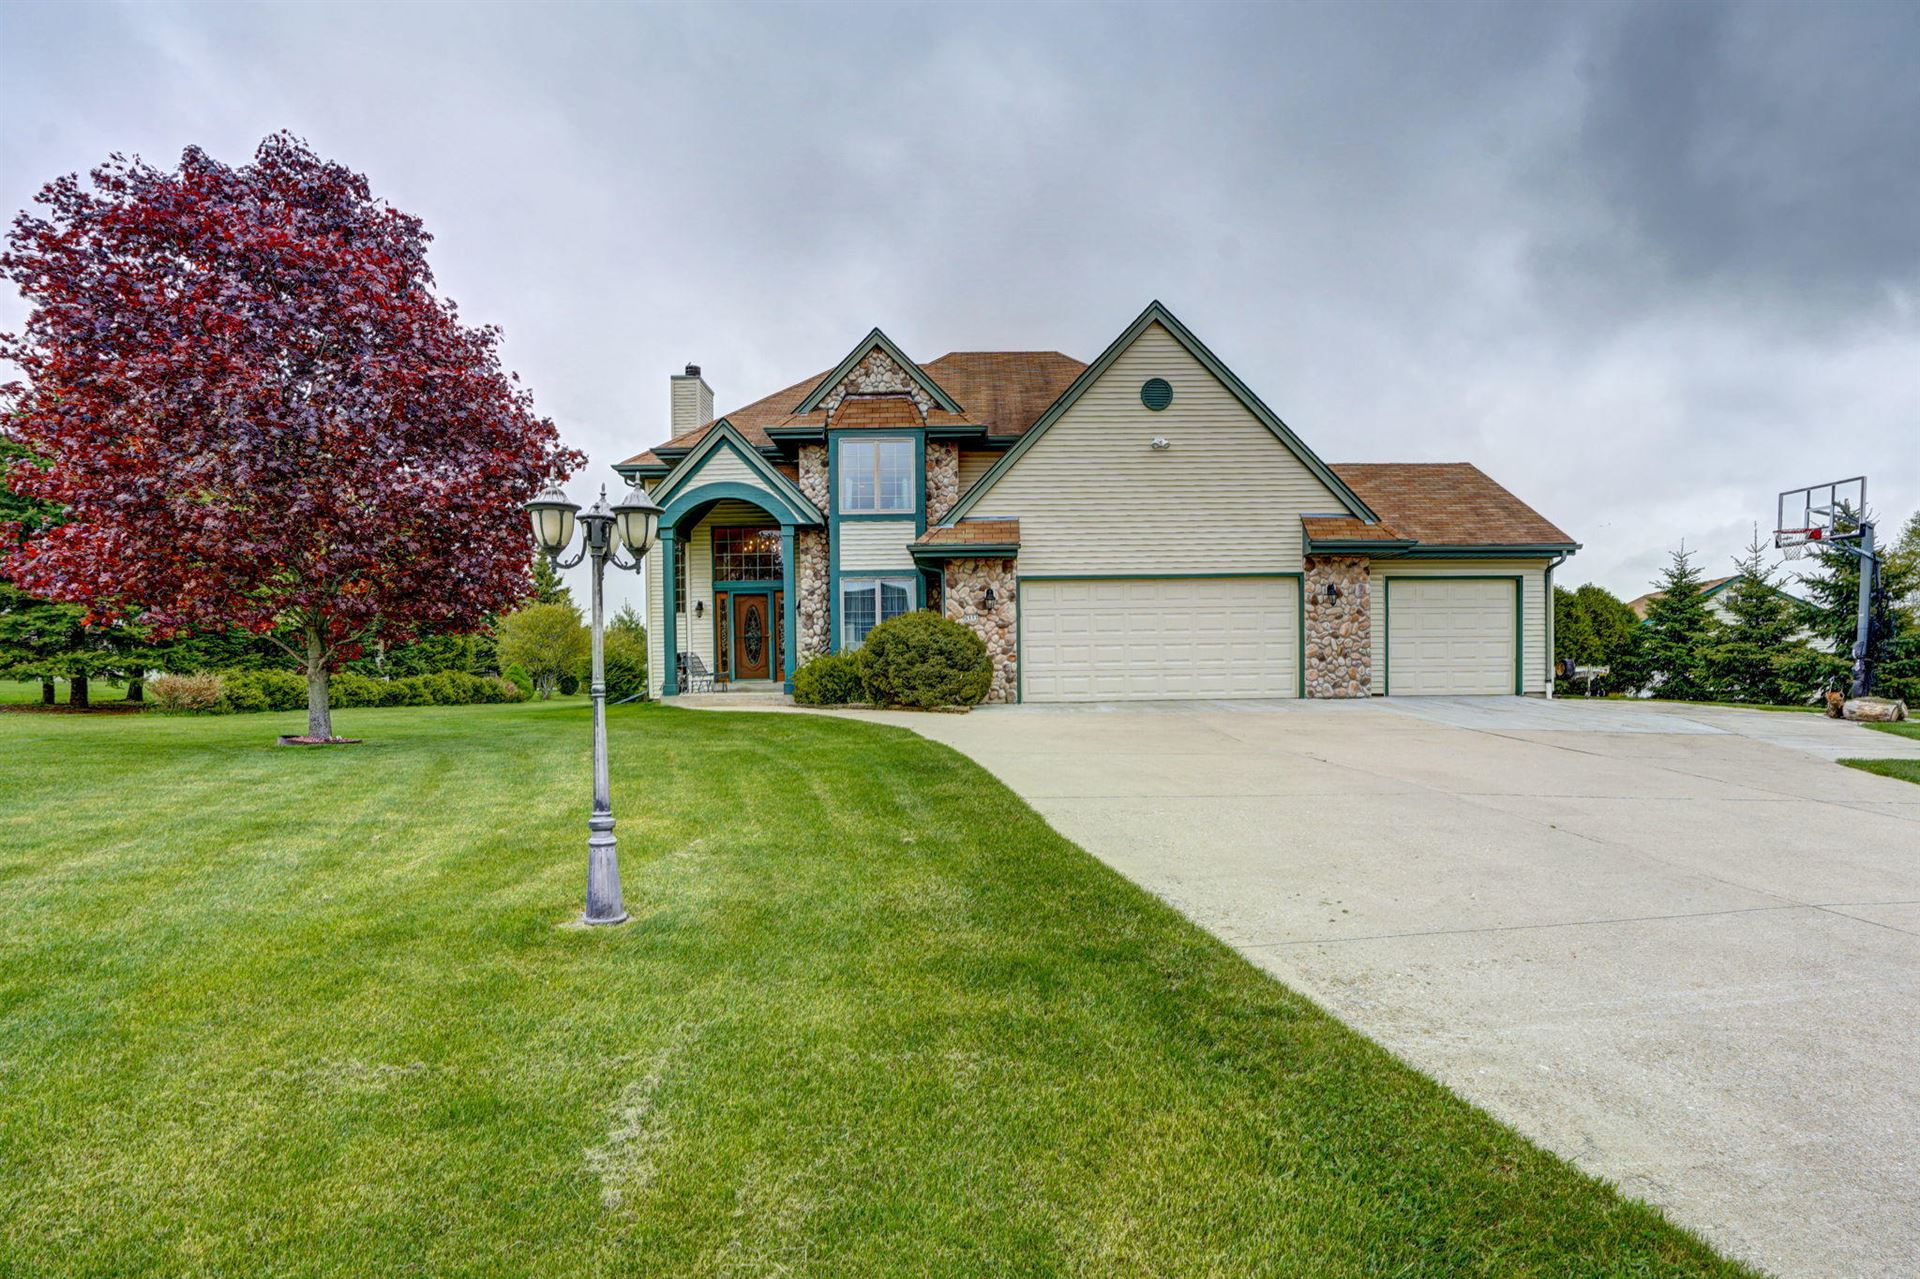 5111 Plateau Ct, Waterford, WI 53185 - #: 1690433